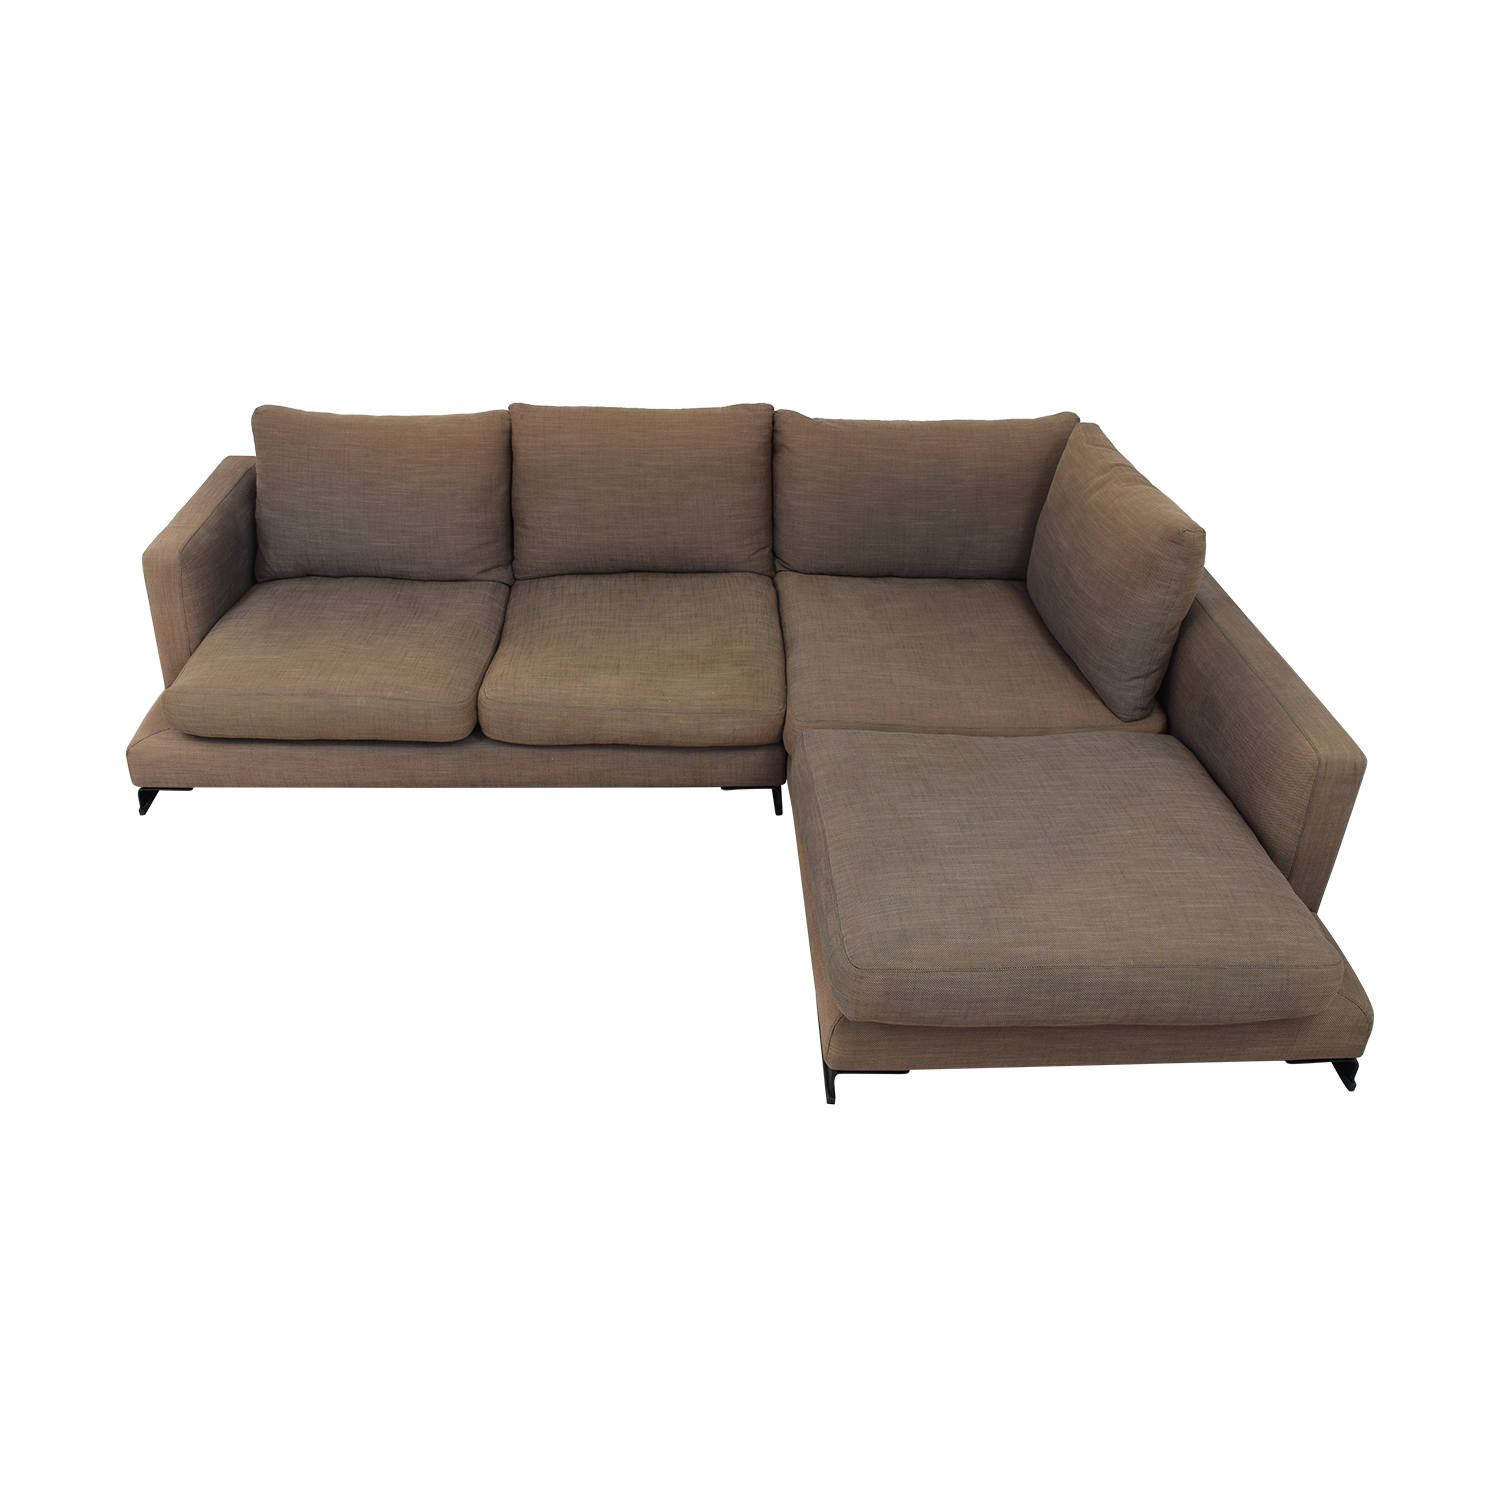 Camerich Camerich Lazy Time Custom Sectional Sofa coupon